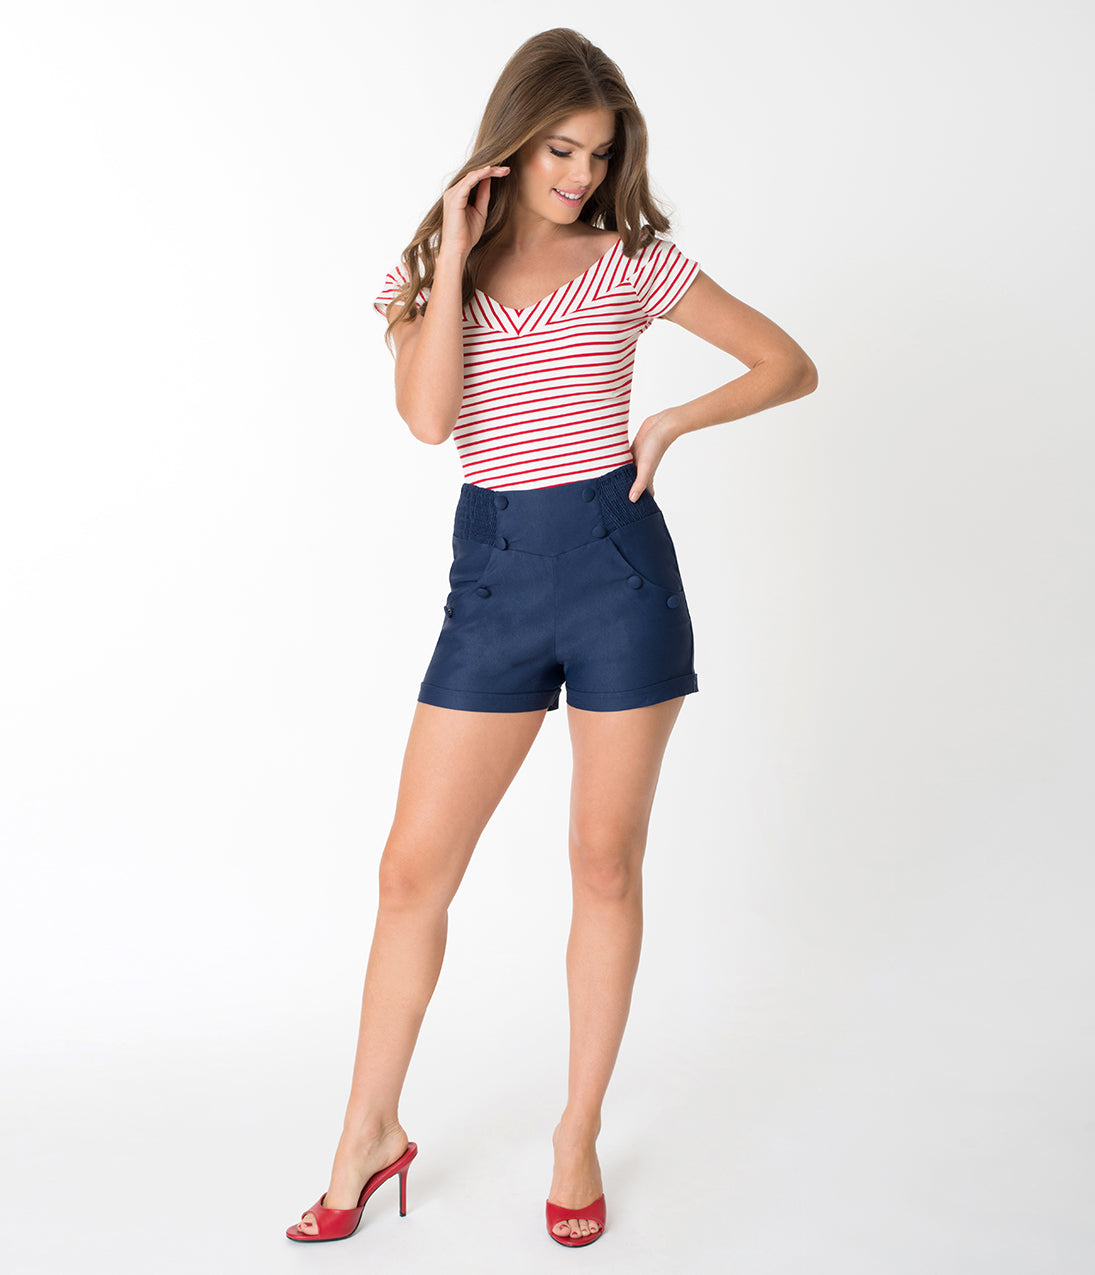 1940s Costume & Outfit Ideas – 16 Women's Looks Unique Vintage Navy Blue Nautical High Waist Sandy Shorts $52.00 AT vintagedancer.com